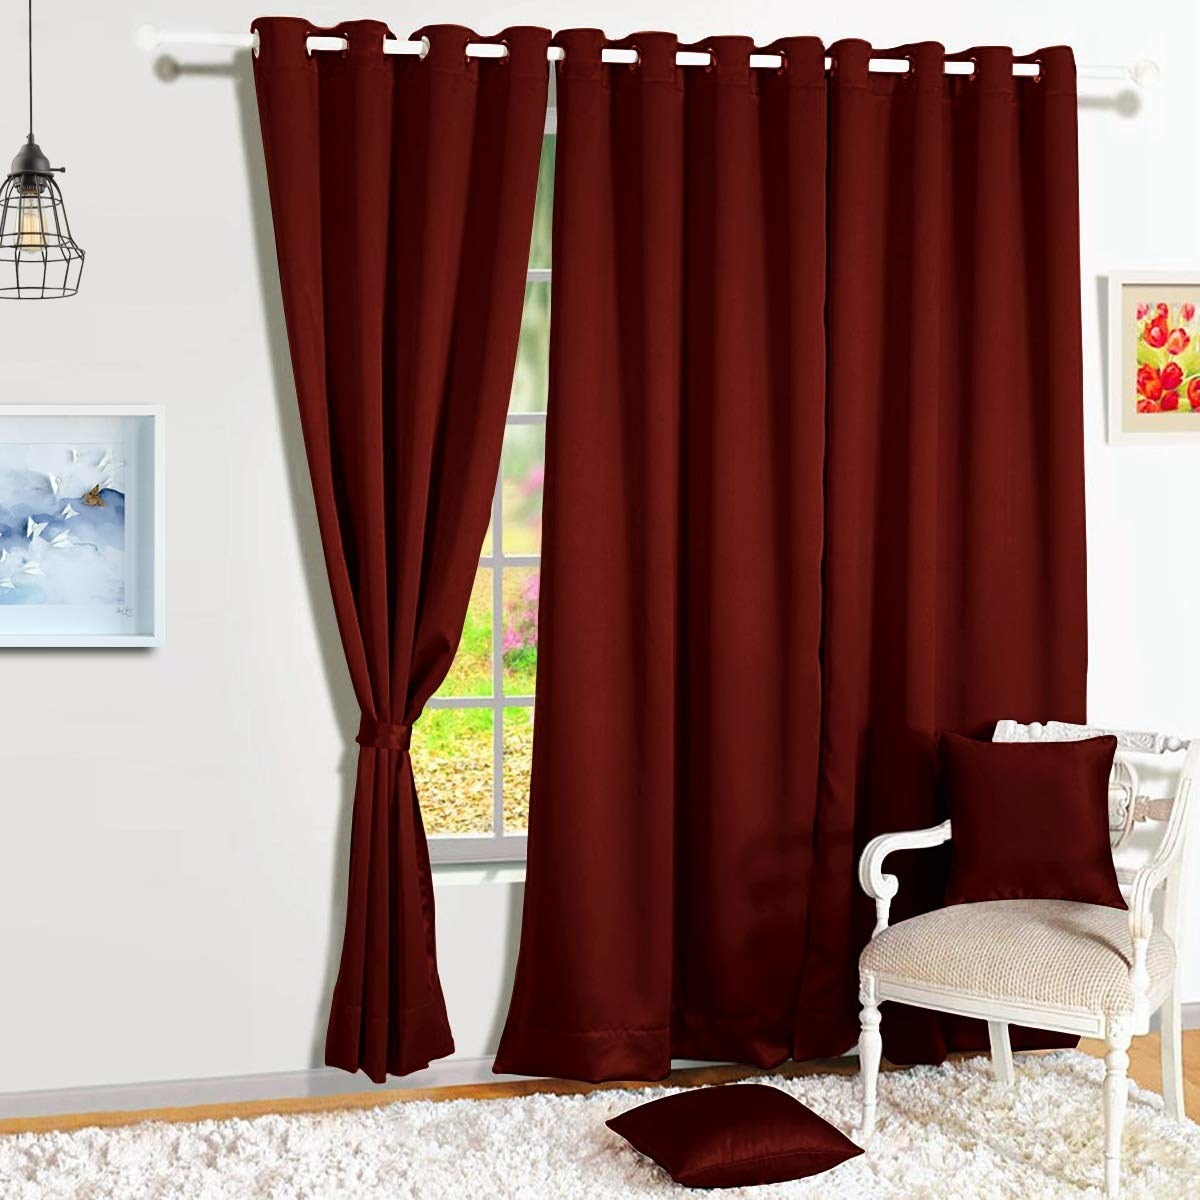 A pair of maroon blackout curtains on a window.